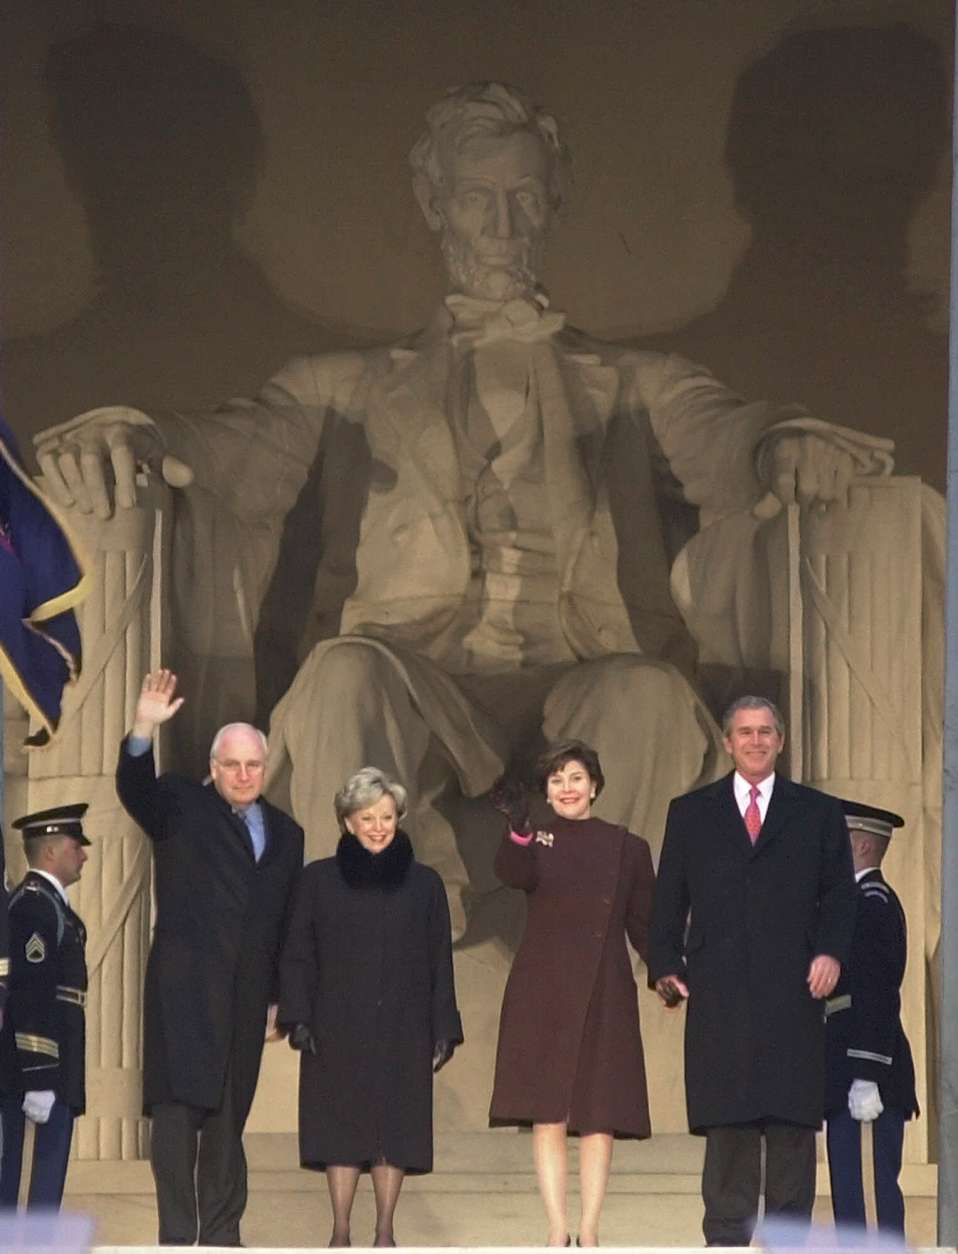 President-elect Bush, right, with wife Laura, and Vice President-elect Dick Cheney and wife Lynne are introduced at the Presidential Inaugural Opening Celebration at the Lincoln Memorial in Washington, Thursday, Jan. 18, 2001. (AP Photo/Charles Rex Arbogast)